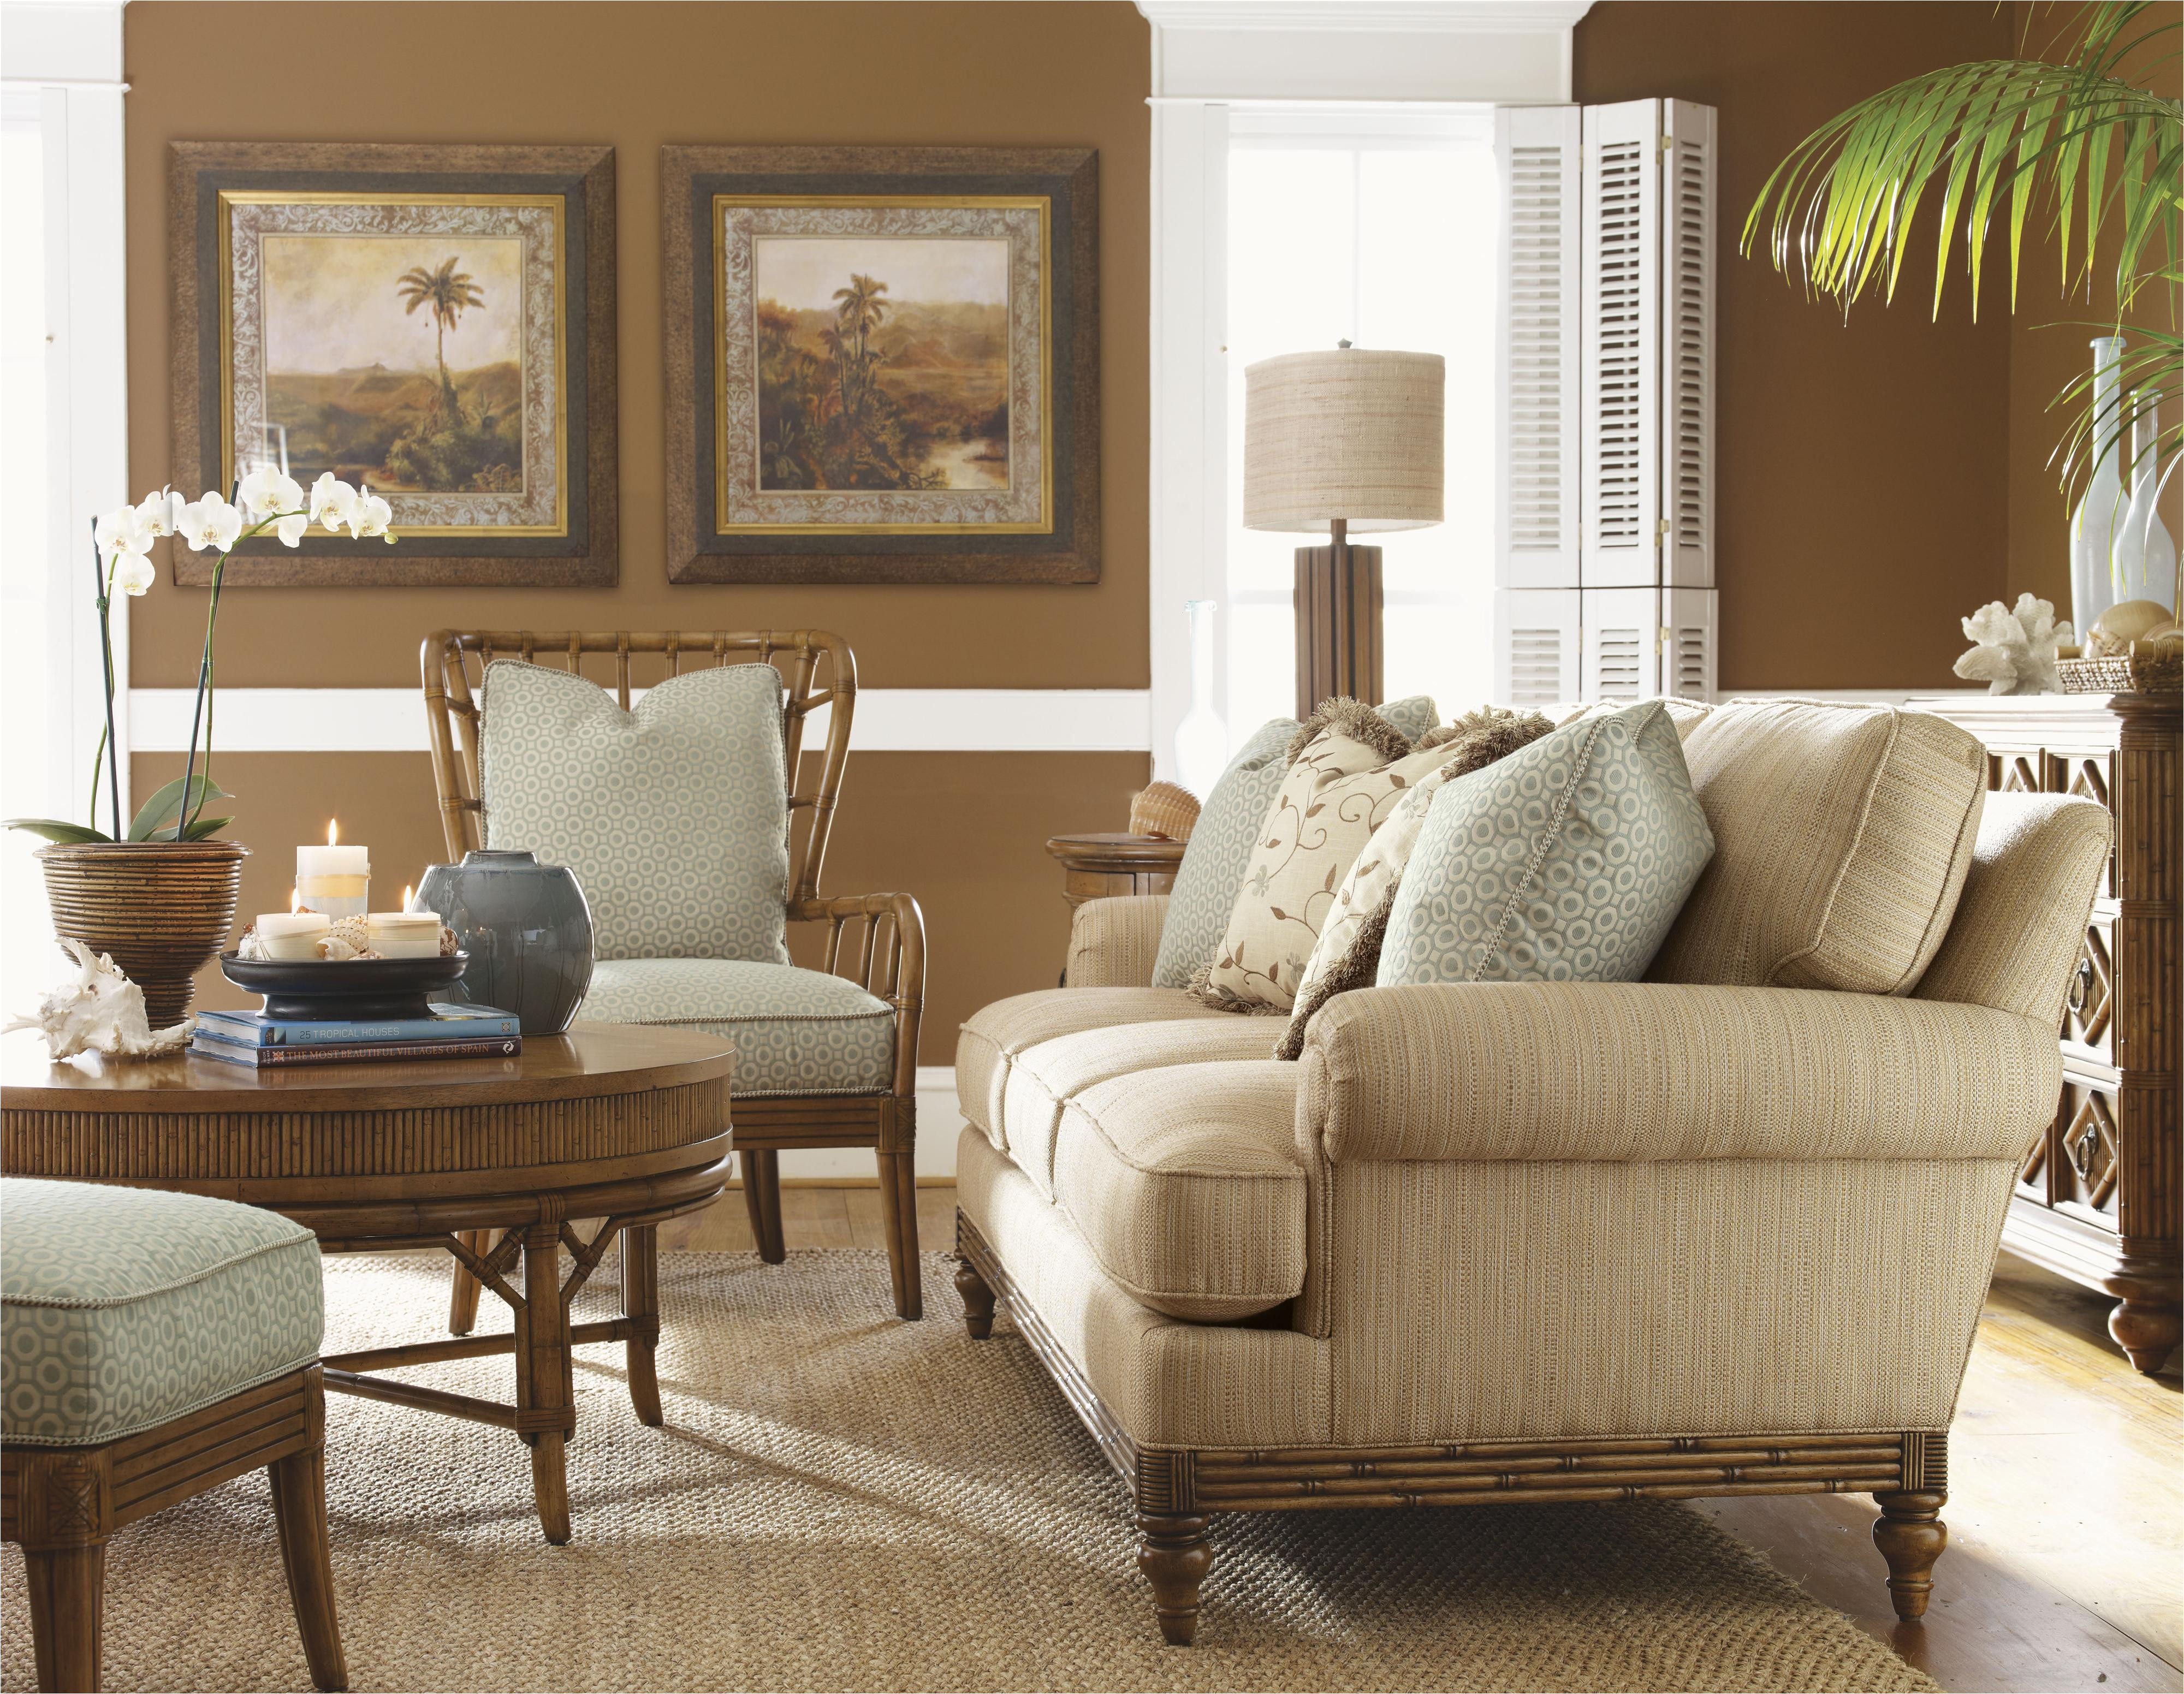 tommy bahama home beach house ocean breeze chair with exposed rattan details howell furniture exposed wood chairs